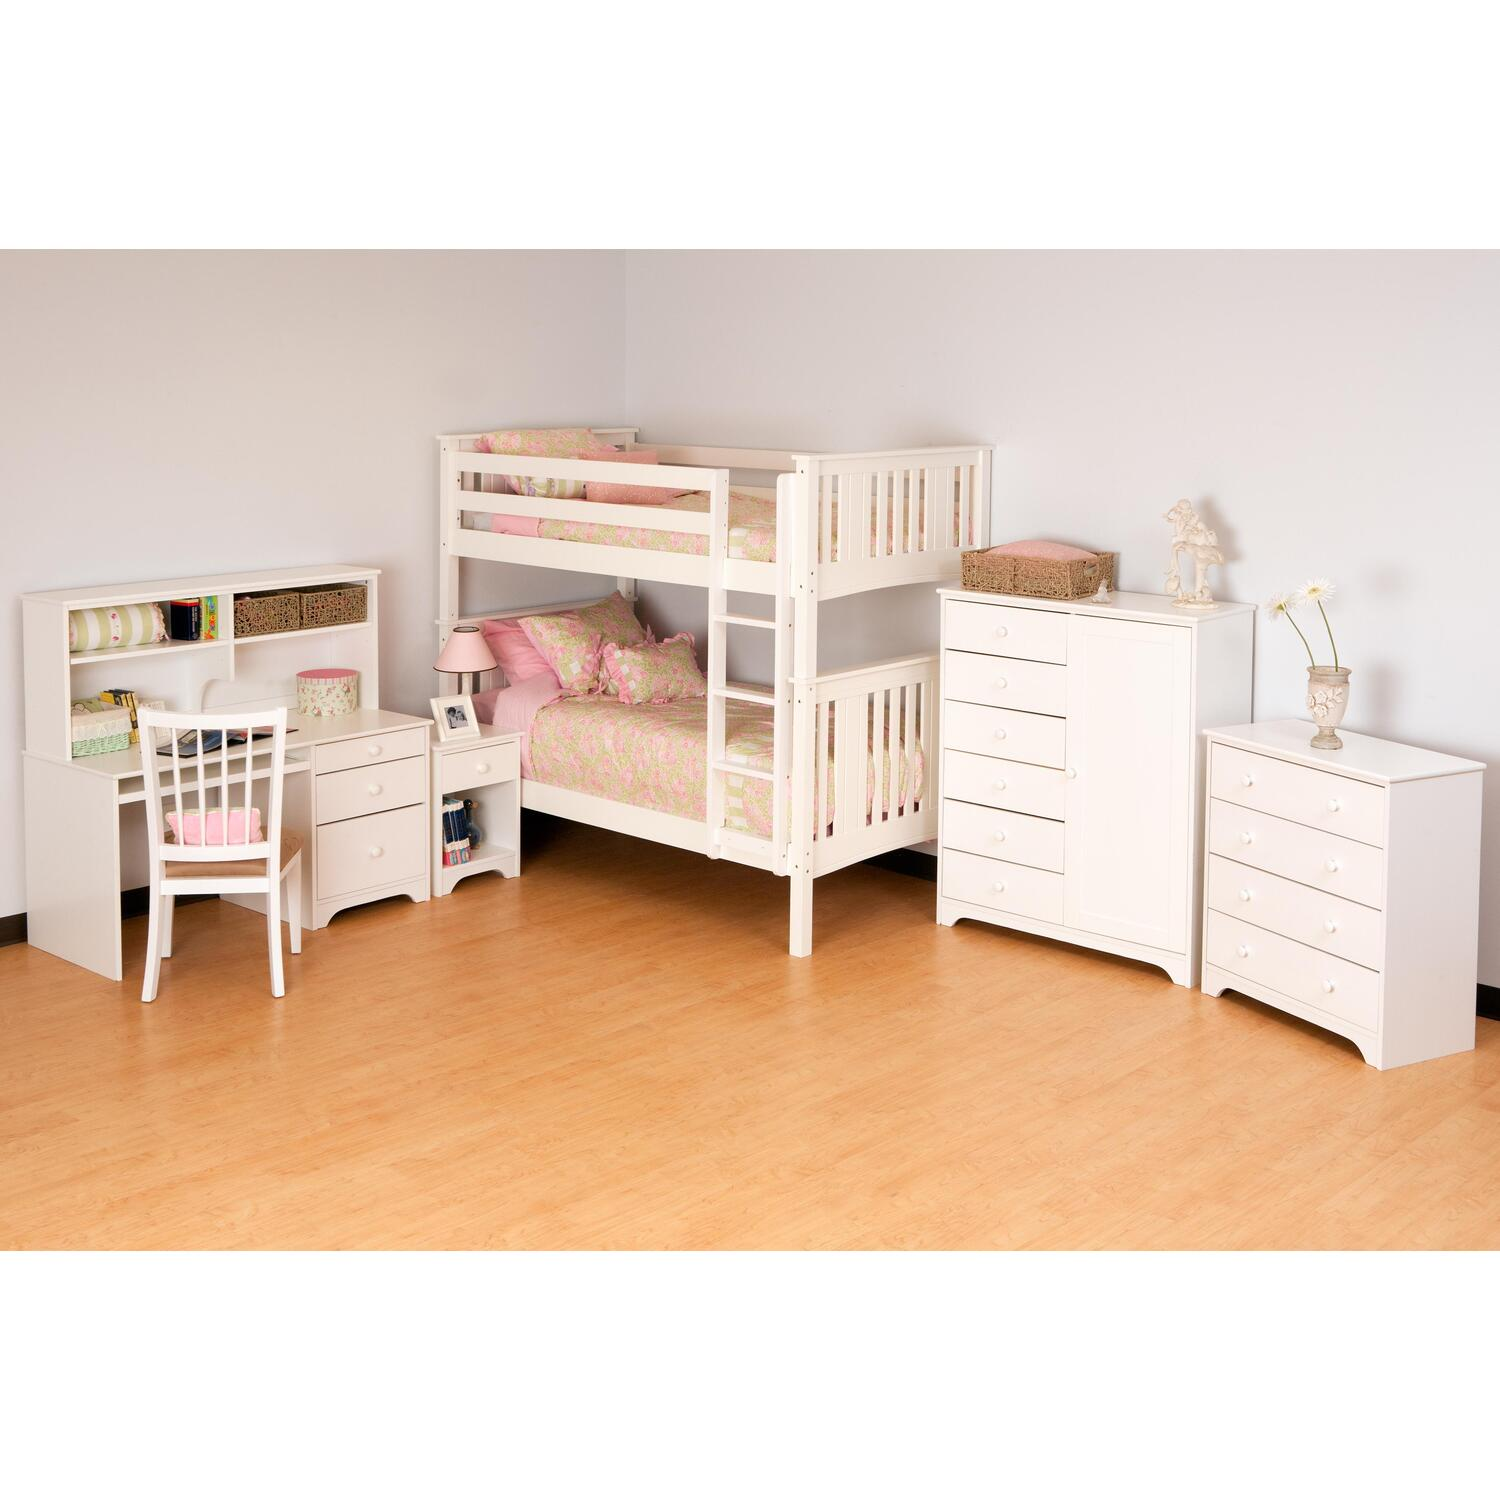 Canwood Base Camp Twin Bed Natural